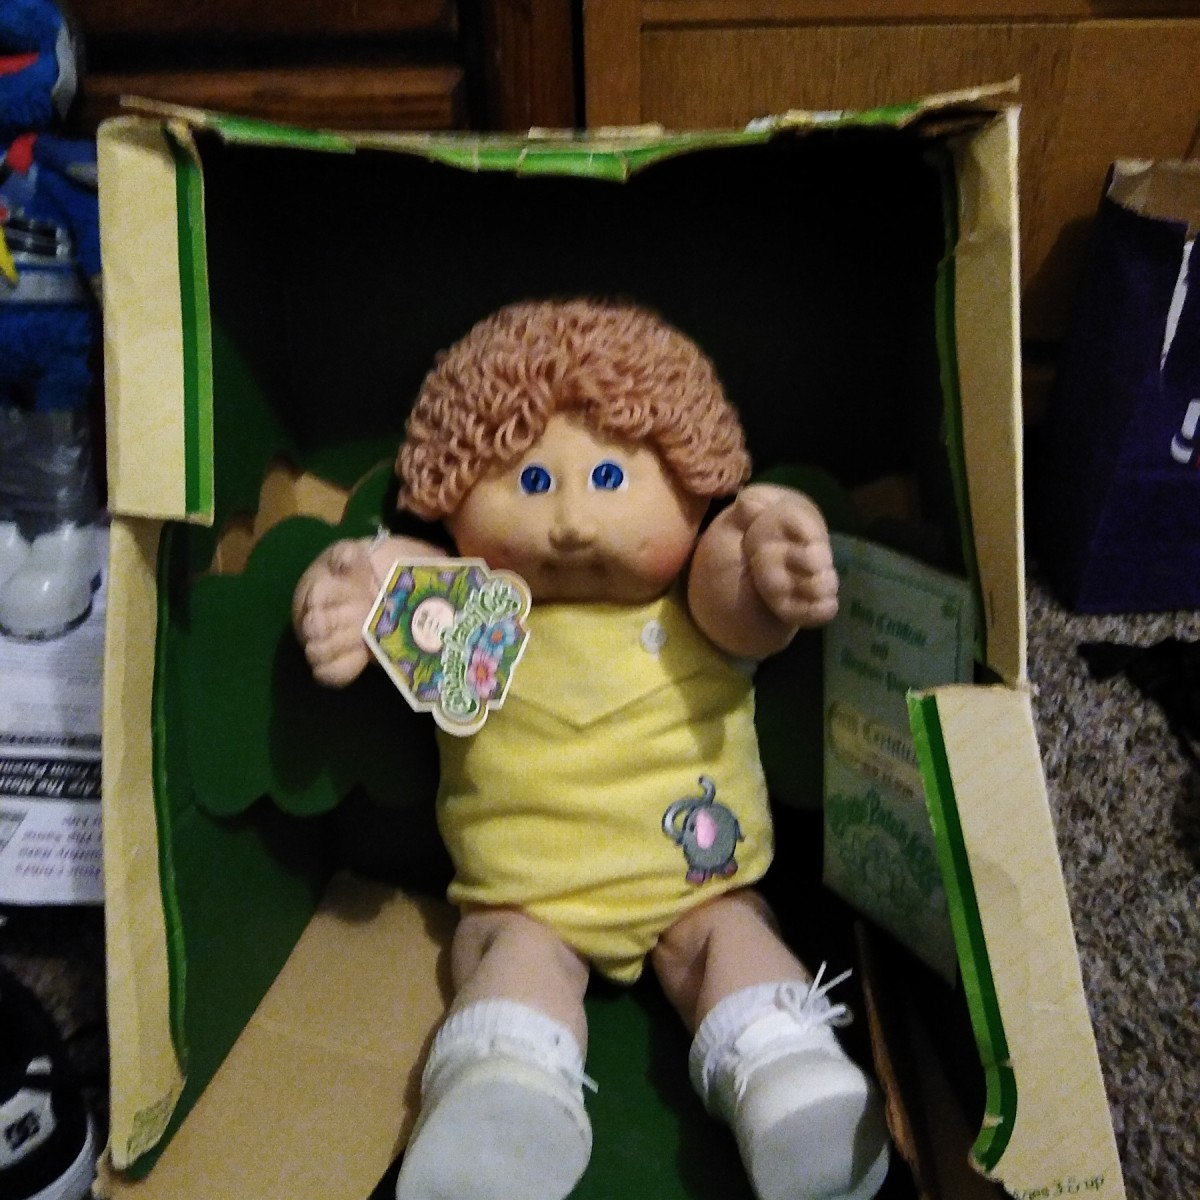 Value of a Coleco Cabbage Patch Kid? | ThriftyFun